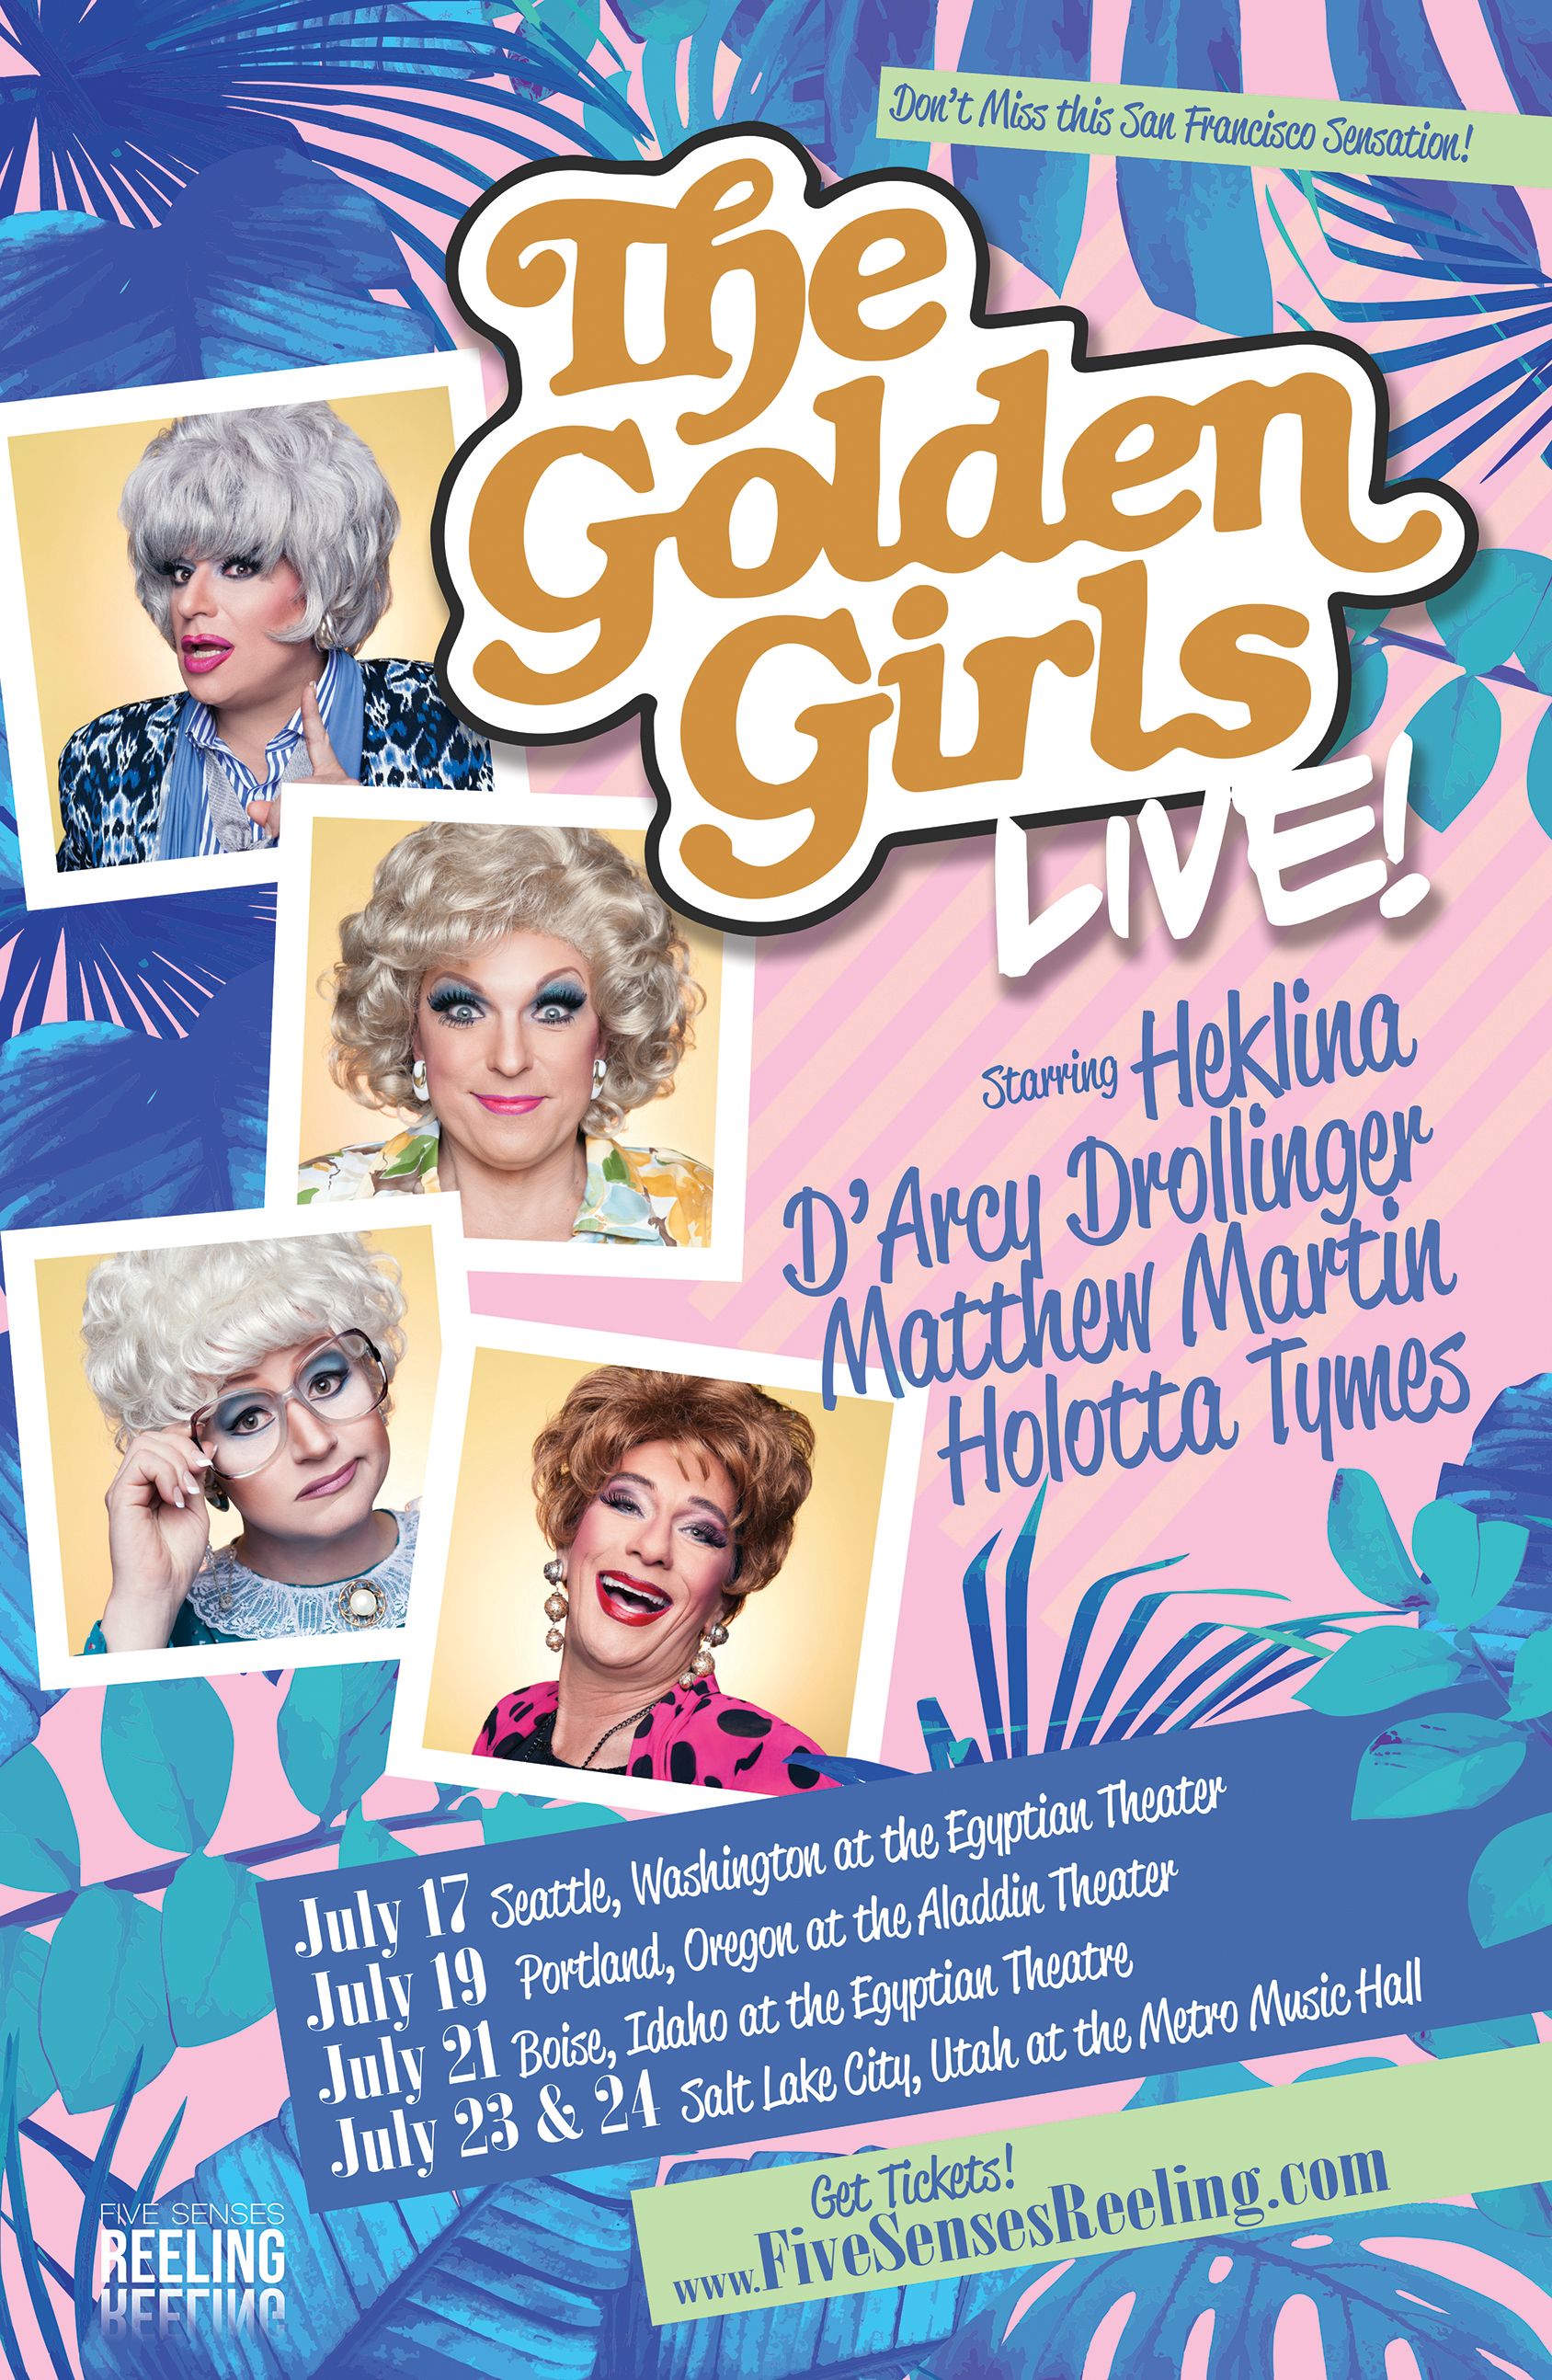 11x17 golden girls 2019 tour poster_final_SM.jpg